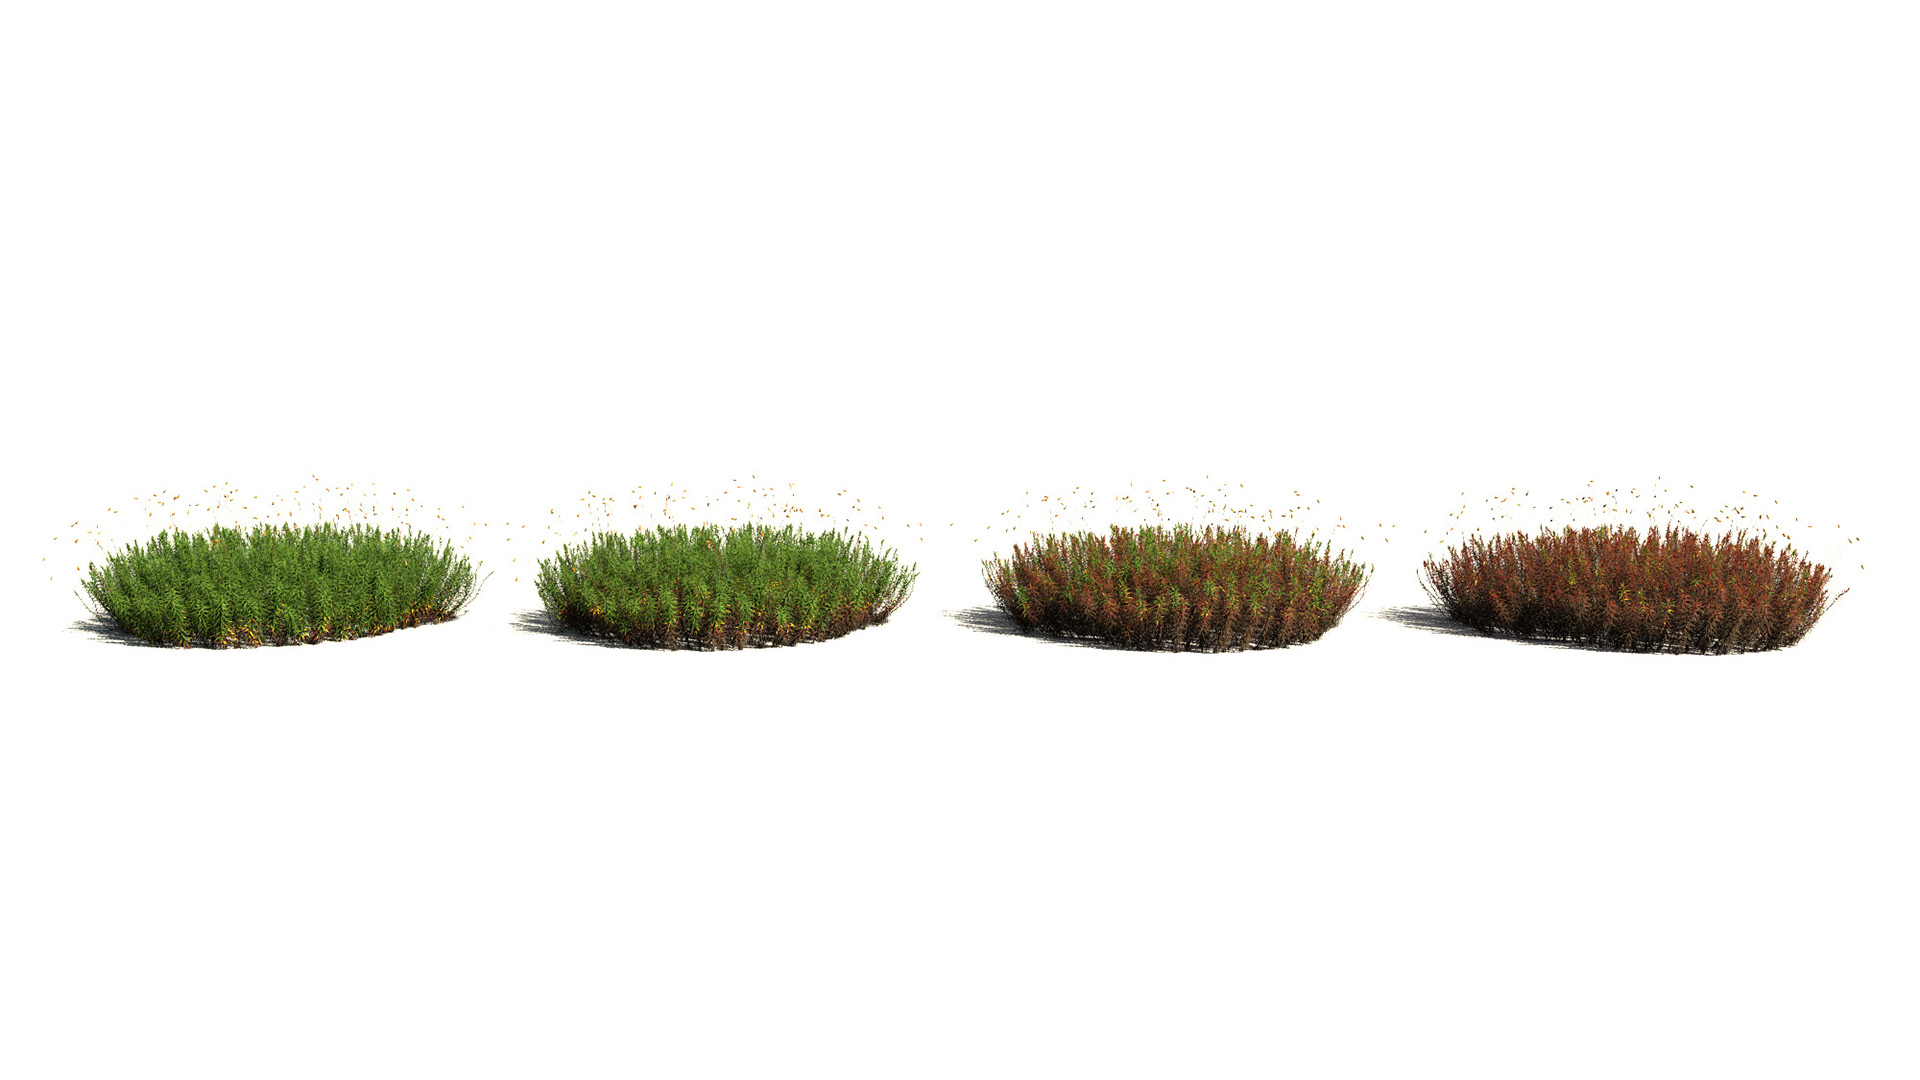 3D model of the Common haircap moss Polytrichum commune health variations